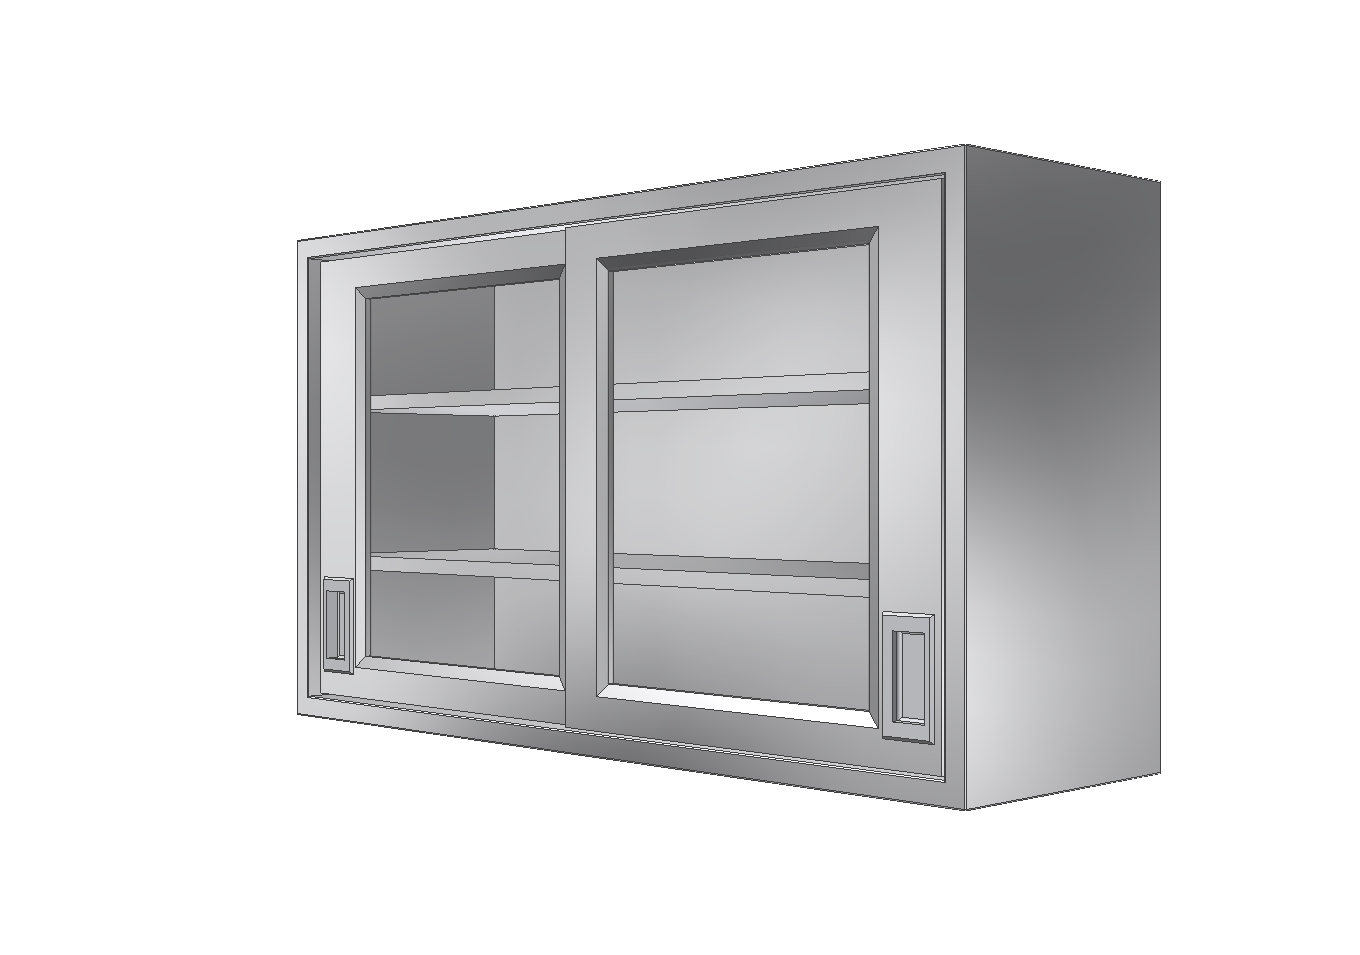 Stainless Case and Cabinets